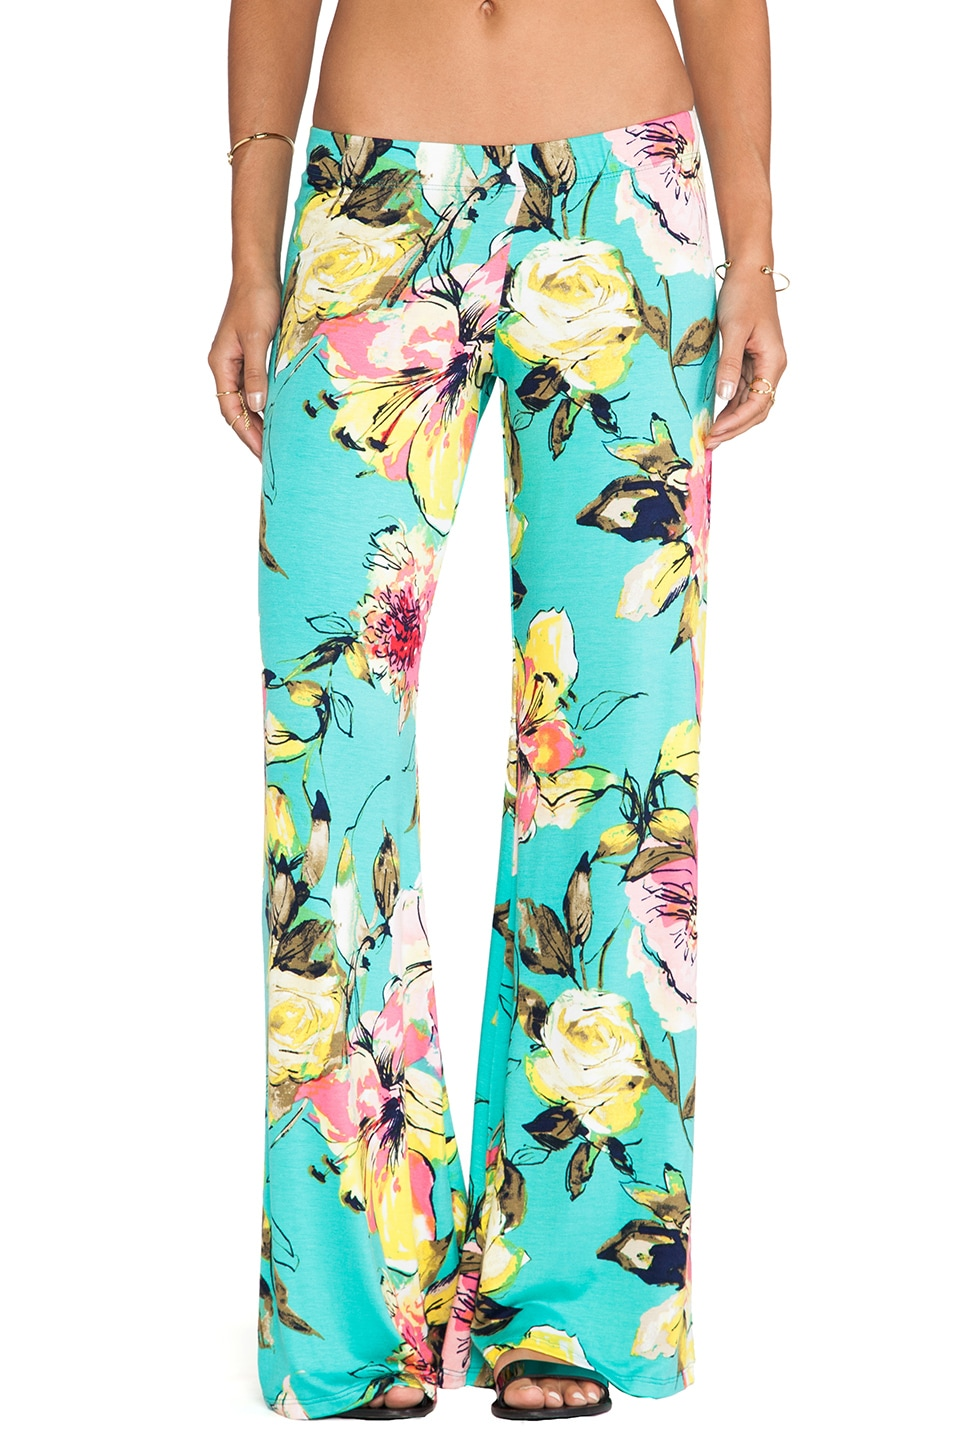 Michael Lauren Derby Wide Leg Pant in Teal Flower